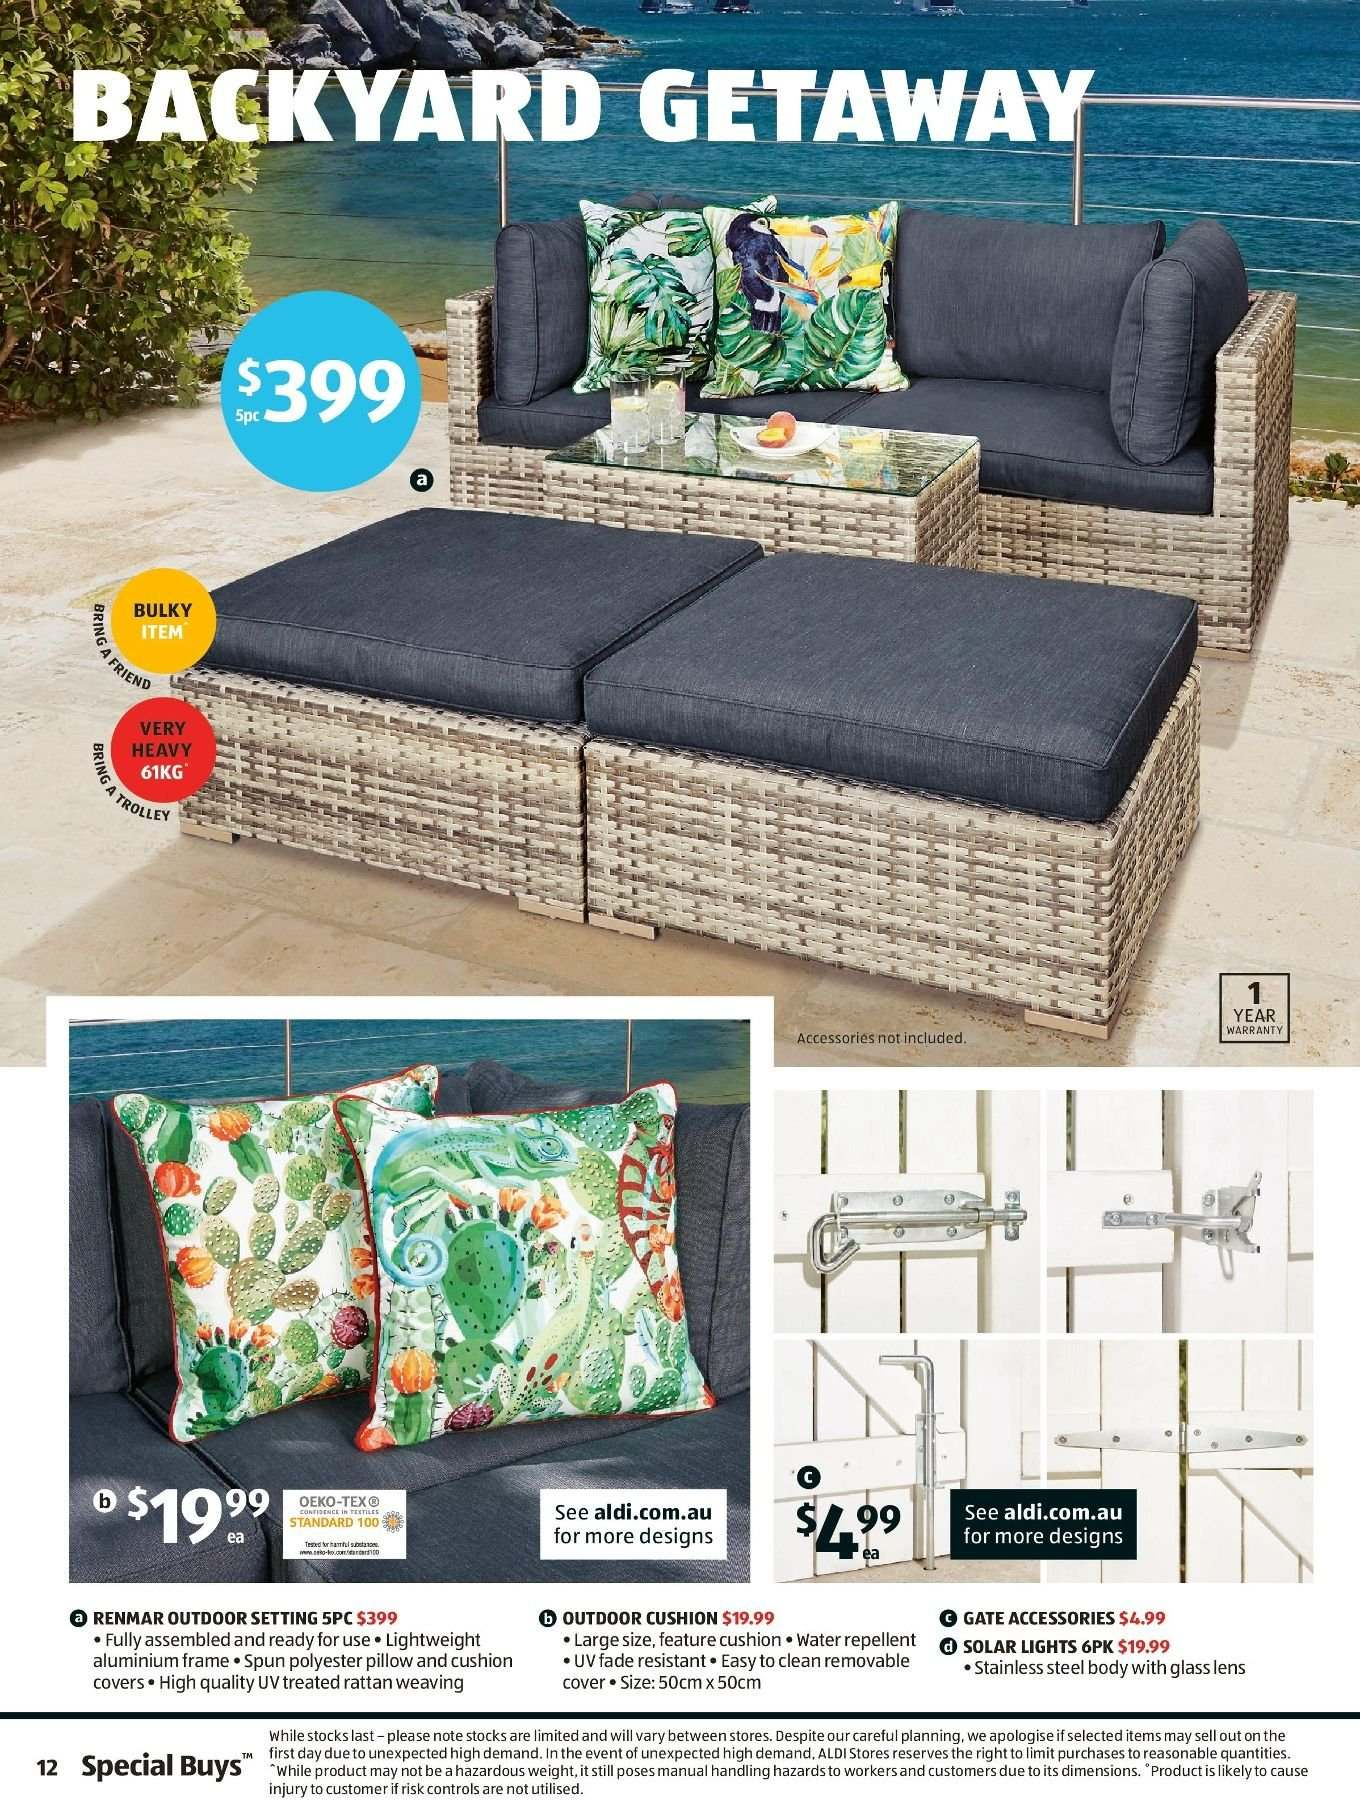 ALDI Catalogue - 13.2.2019 - 19.2.2019 - Sales products - accessories, cover, cushion, frame, glass, lens, repellent, stainless, pillow, water. Page 10.